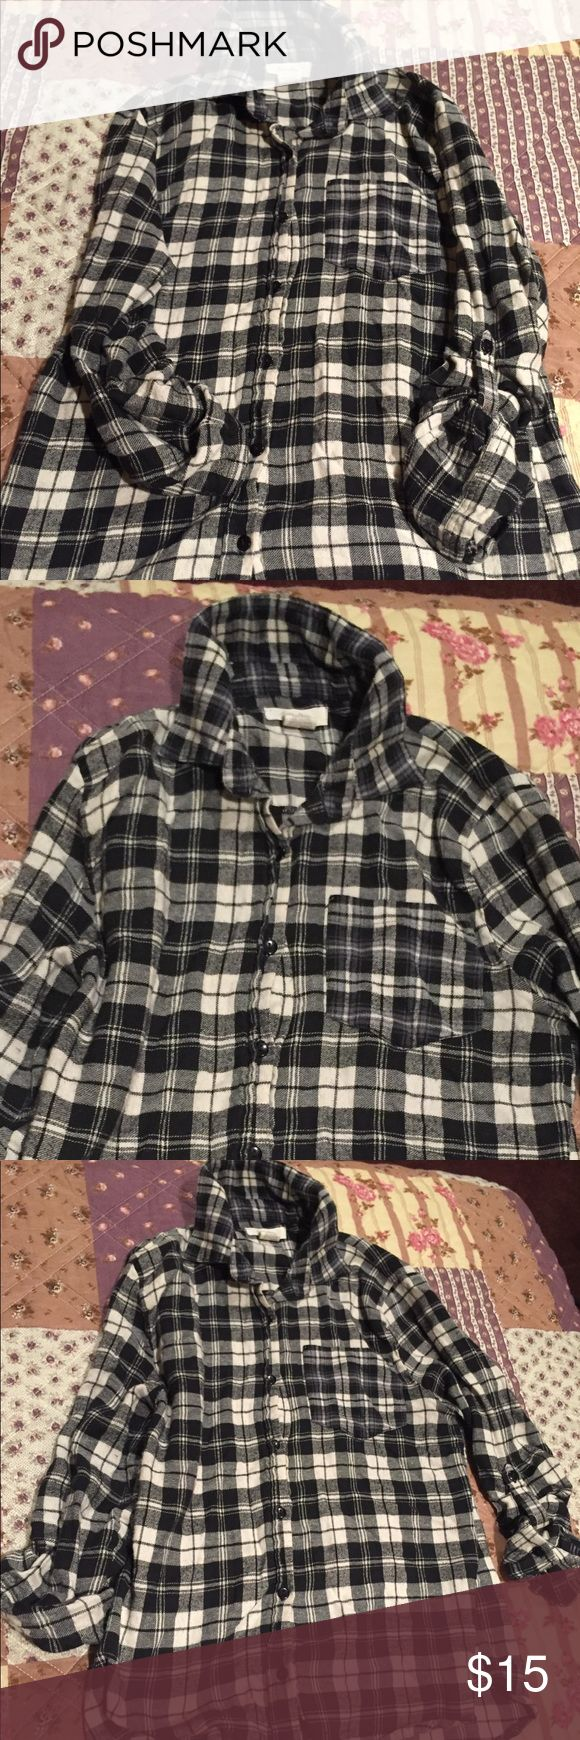 Love Notes Super Soft Black and White Flannel, M Super soft and great quality! Black and white classic flannel in good condition. Love Notes brand. Women's size medium. love notes Tops Button Down Shirts